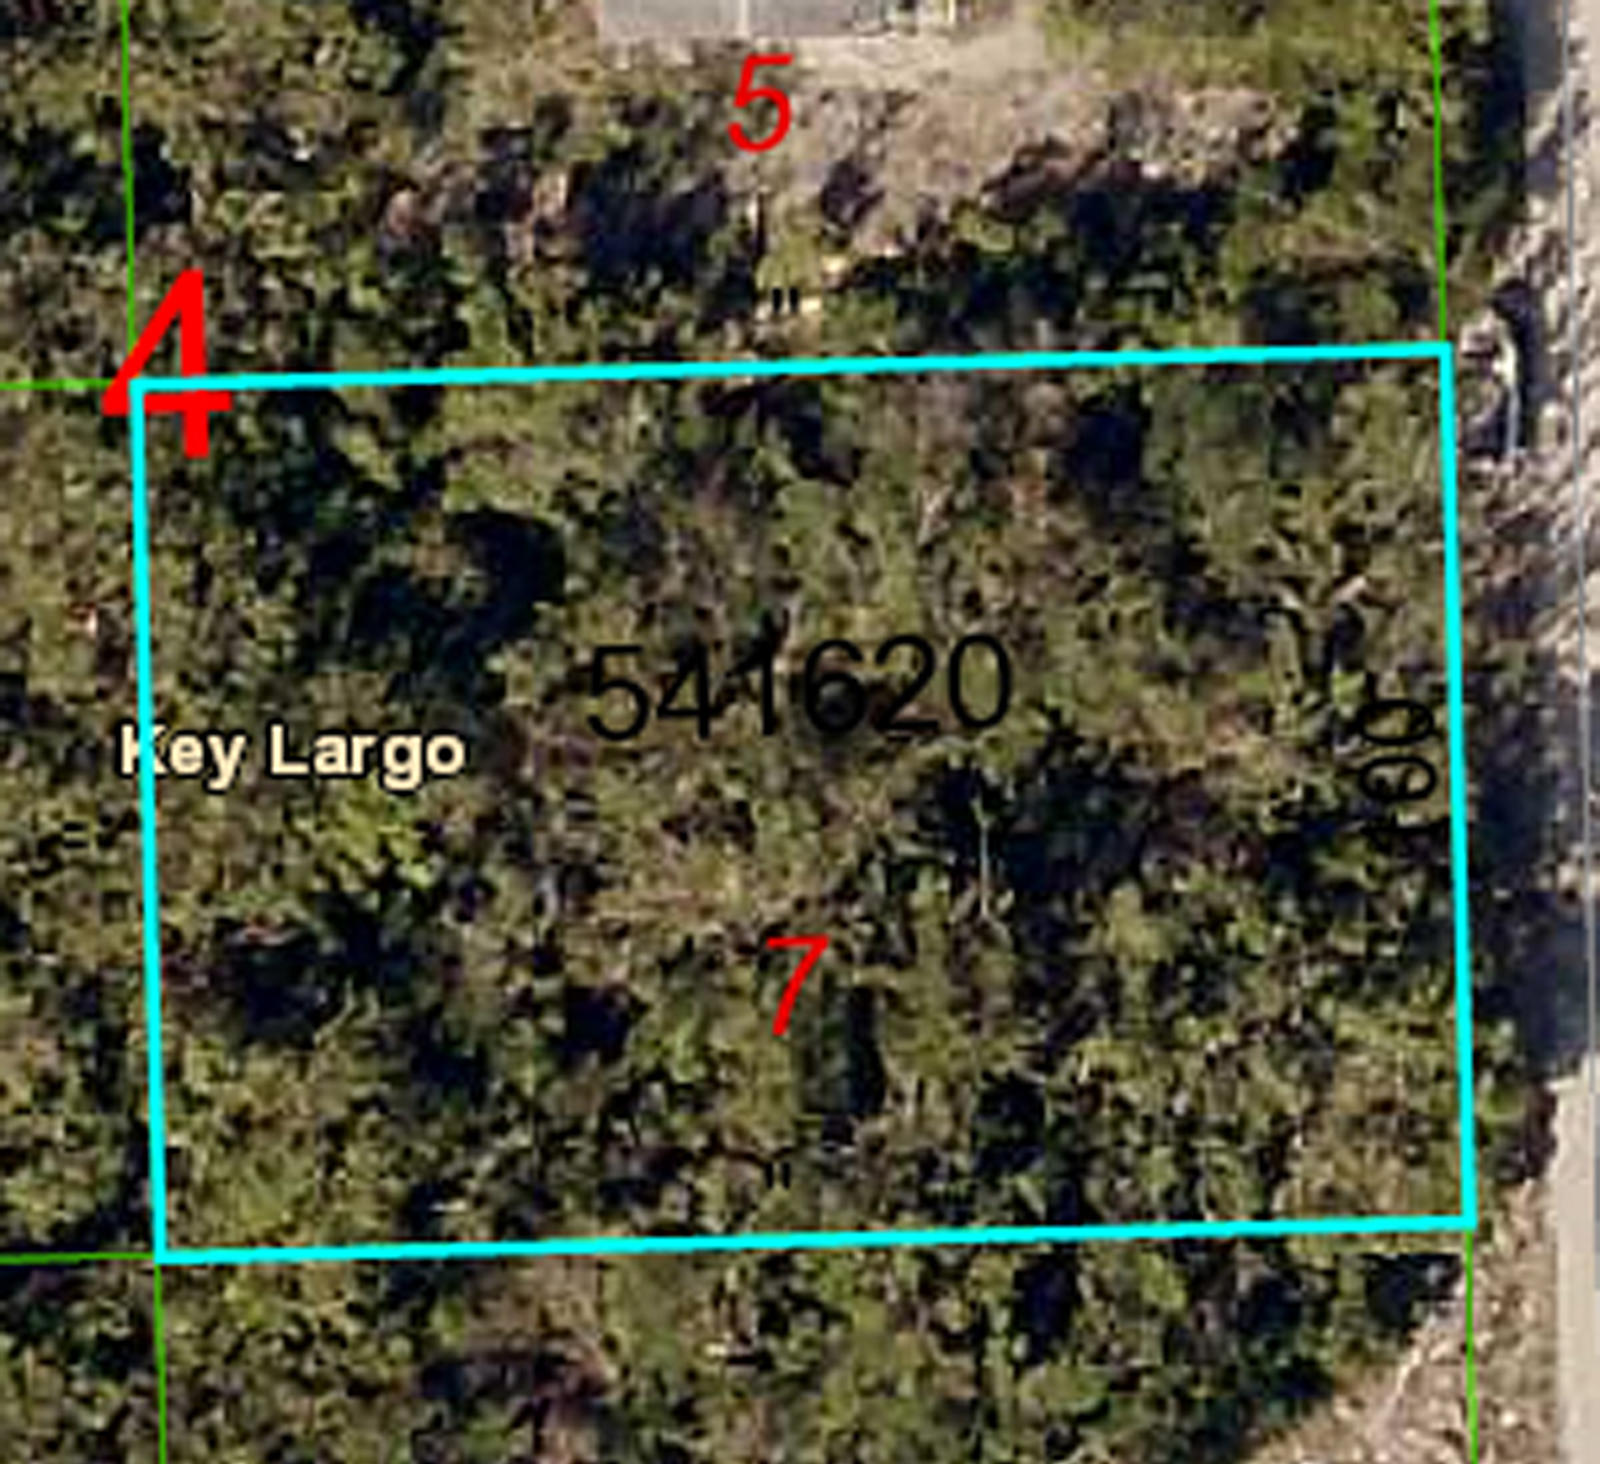 Key Largo Foreclosures   Florida Keys Real Estate Collection on map of sombrero beach, map of north ft myers, map of everglades np, map of biscayne park, map of st. marks, map of opa locka, map of big coppitt key, map of rainbow river, map of north bay village, map of indian key, map of glades county, map of diamonds, map of little conch key, map of pelican key, map of keaton beach, map of the keys, map of sigsbee park, map of pahokee, map of virginia key, map of cape kennedy,